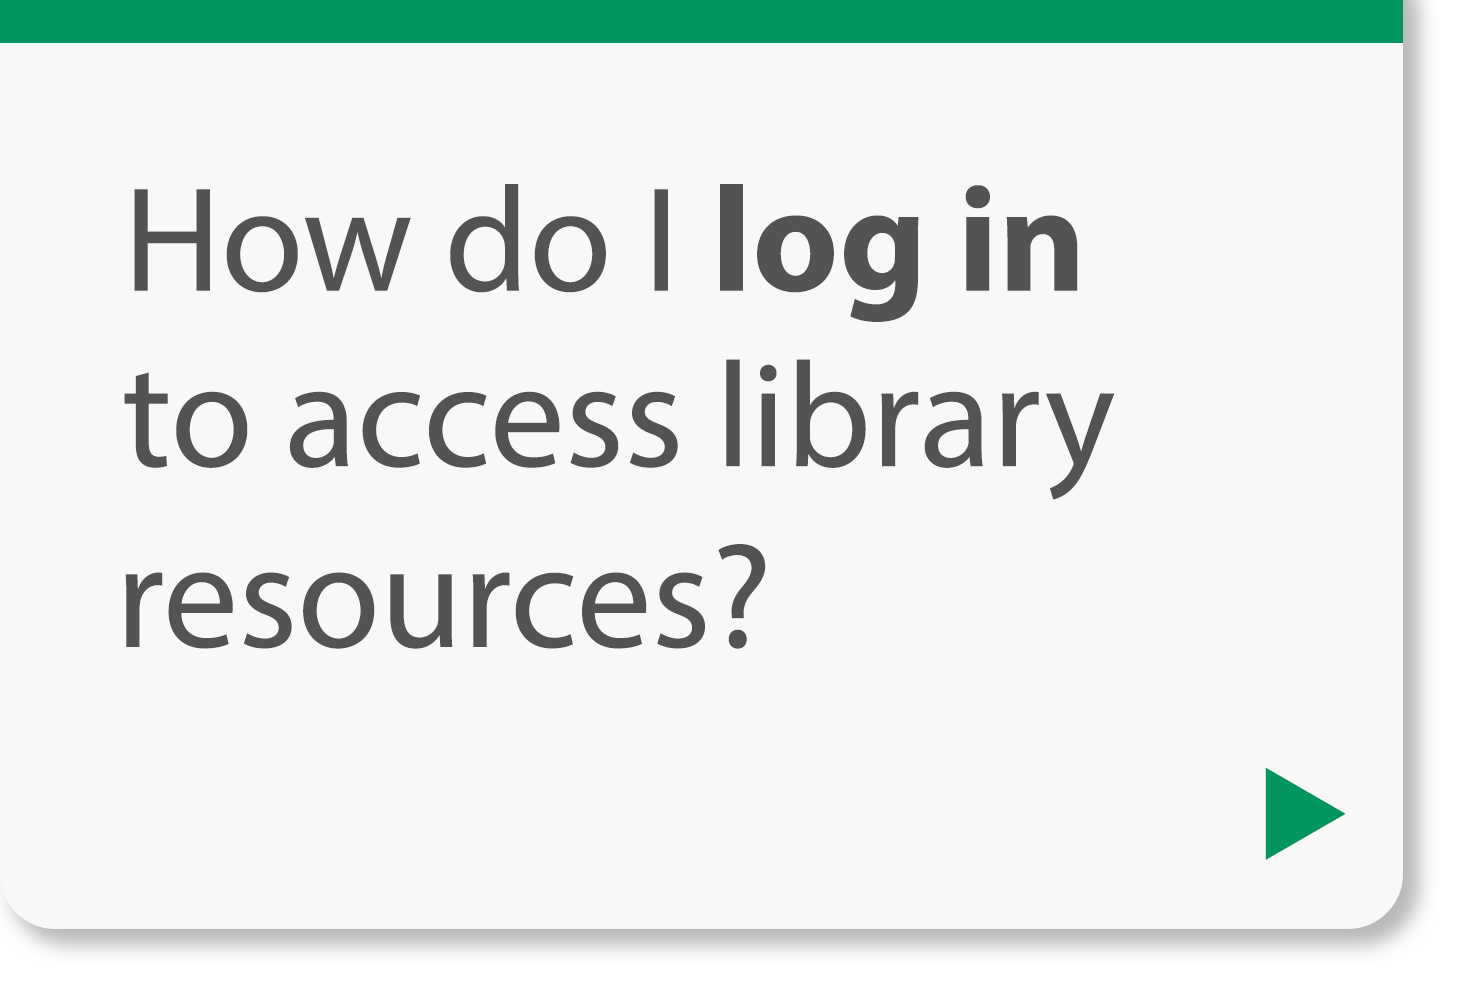 How do I log in to access library resources?